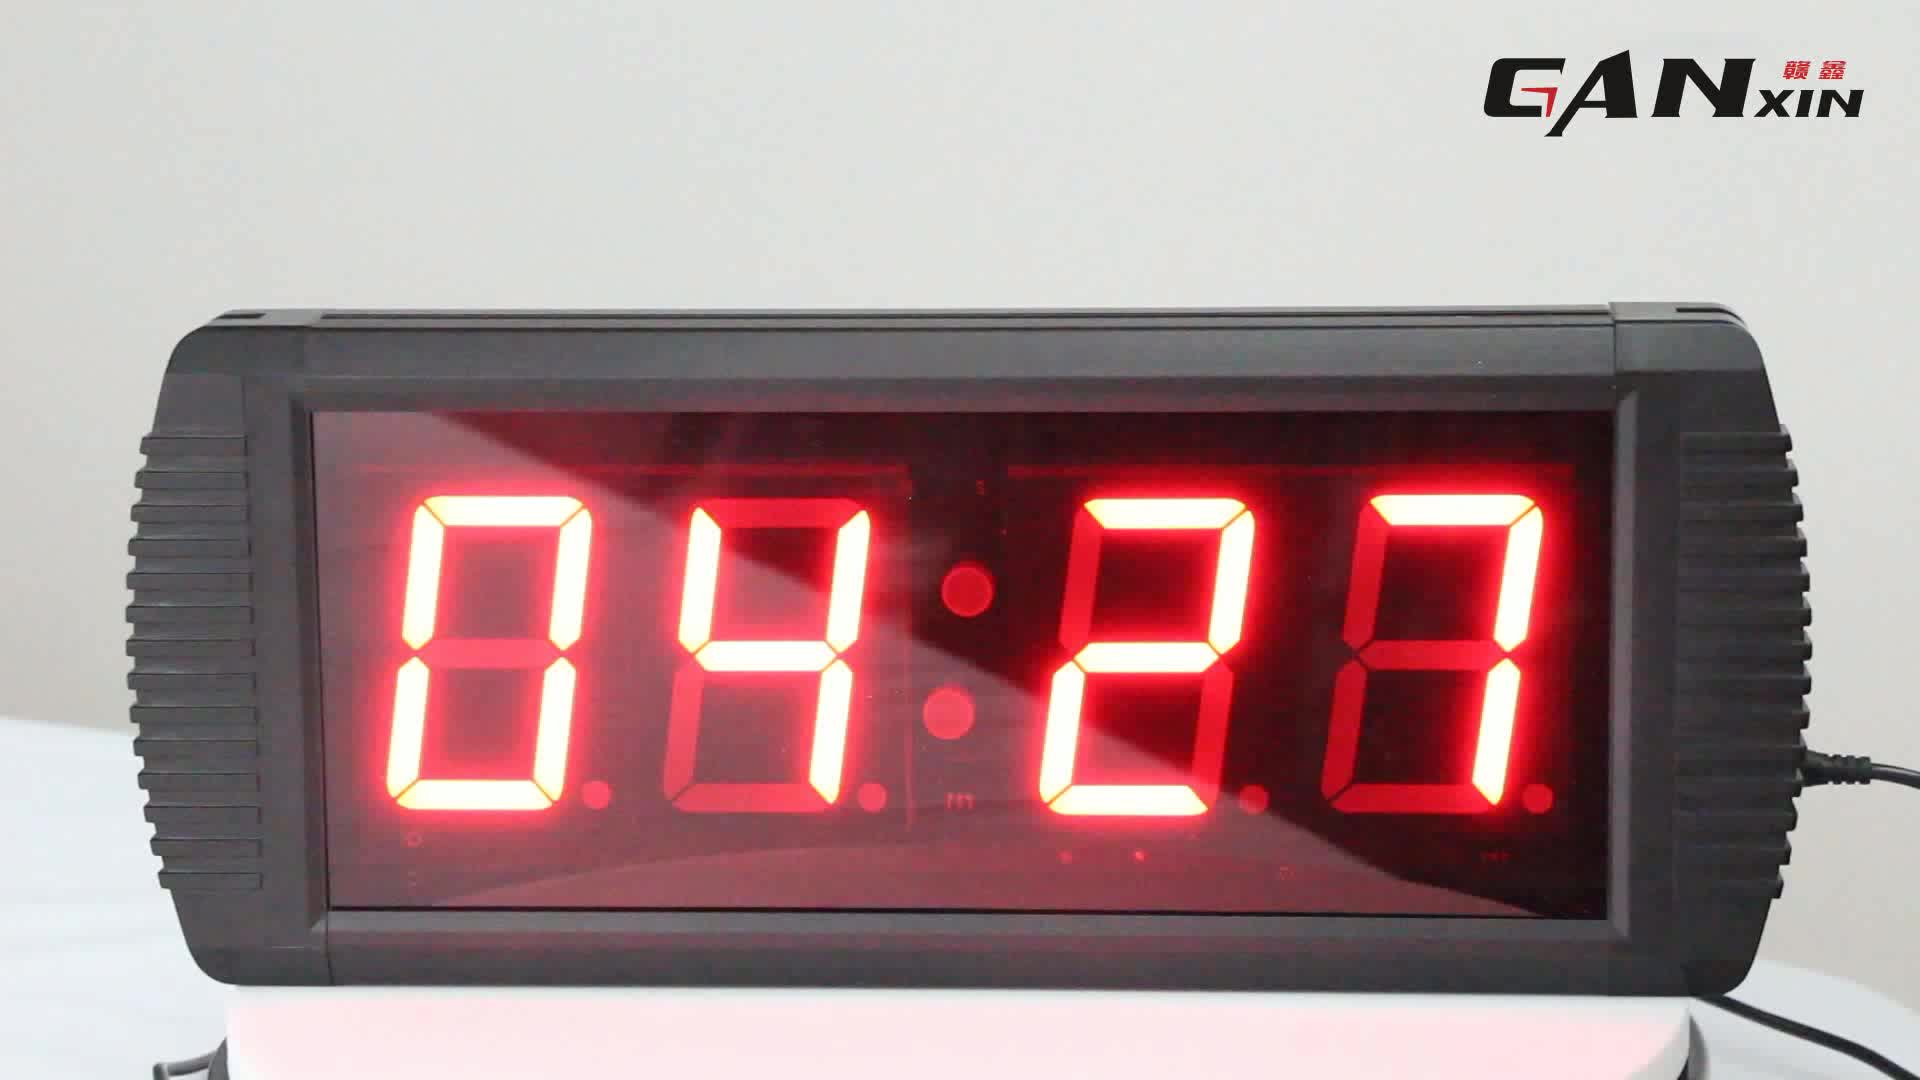 2018 Top selling programmable 4 digit LED wall mounted digital wall clock timer